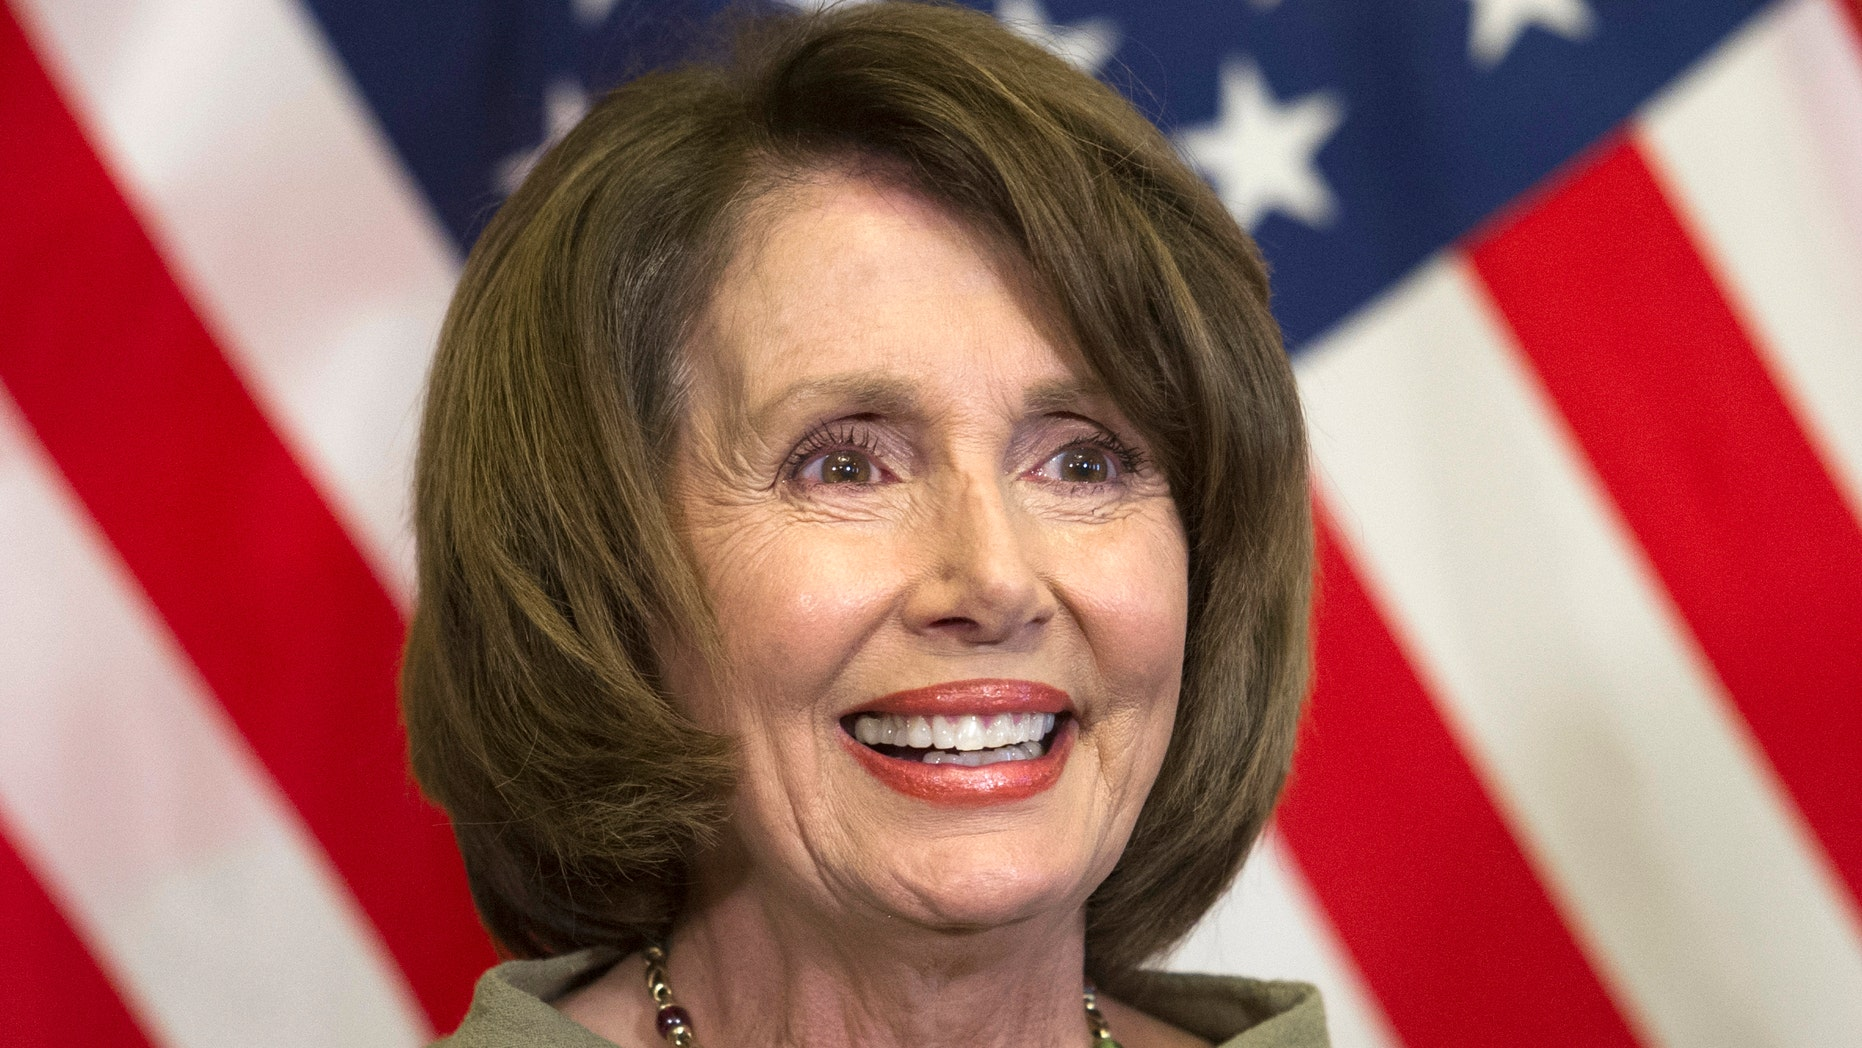 March 10, 2016: House Minority Leader Nancy Pelosi of Calif. is seen on Capitol Hill in Washington.